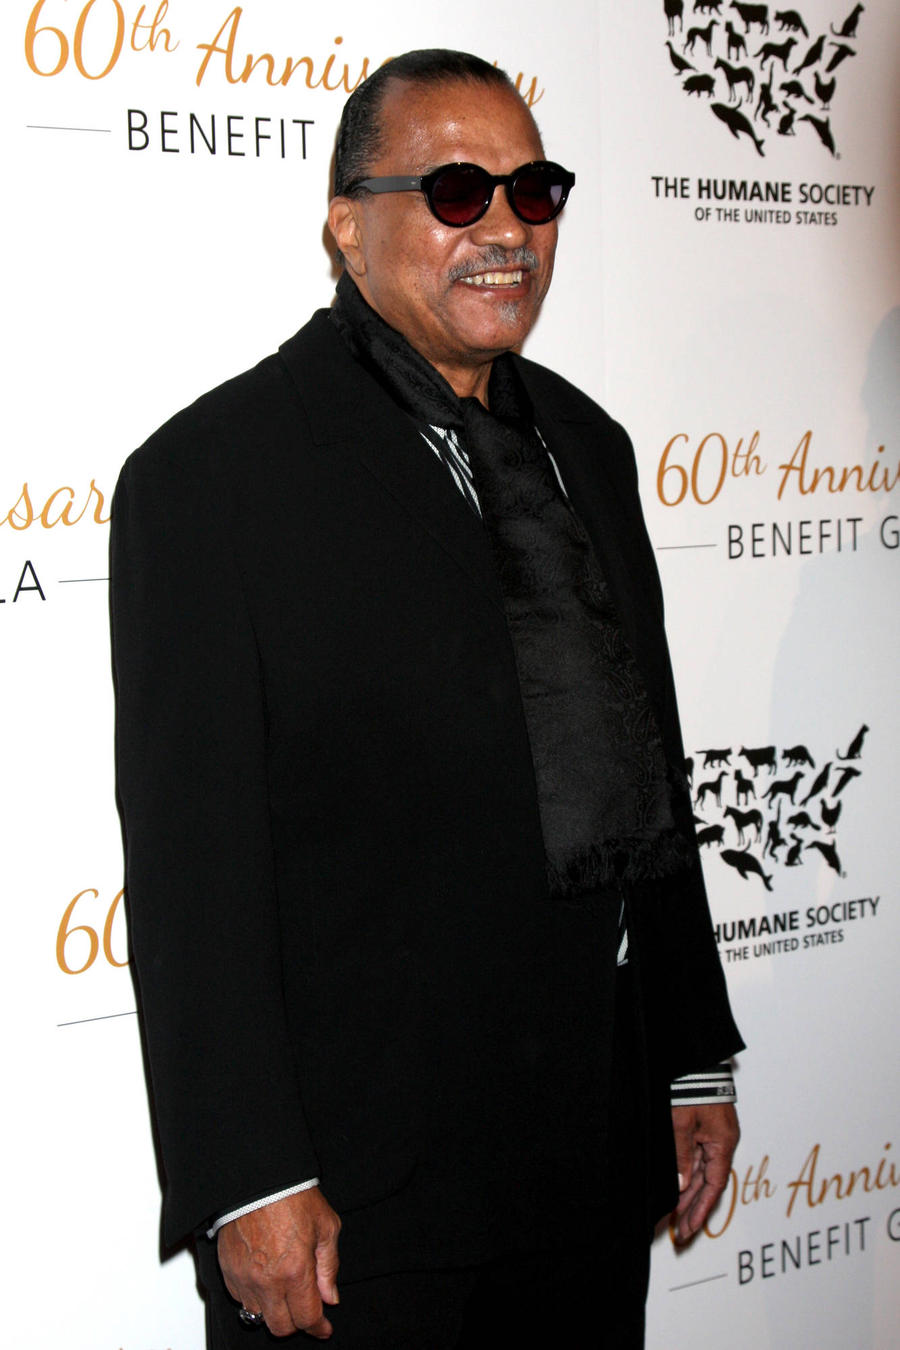 Billy Dee Williams Returns To Colt 45 Roots